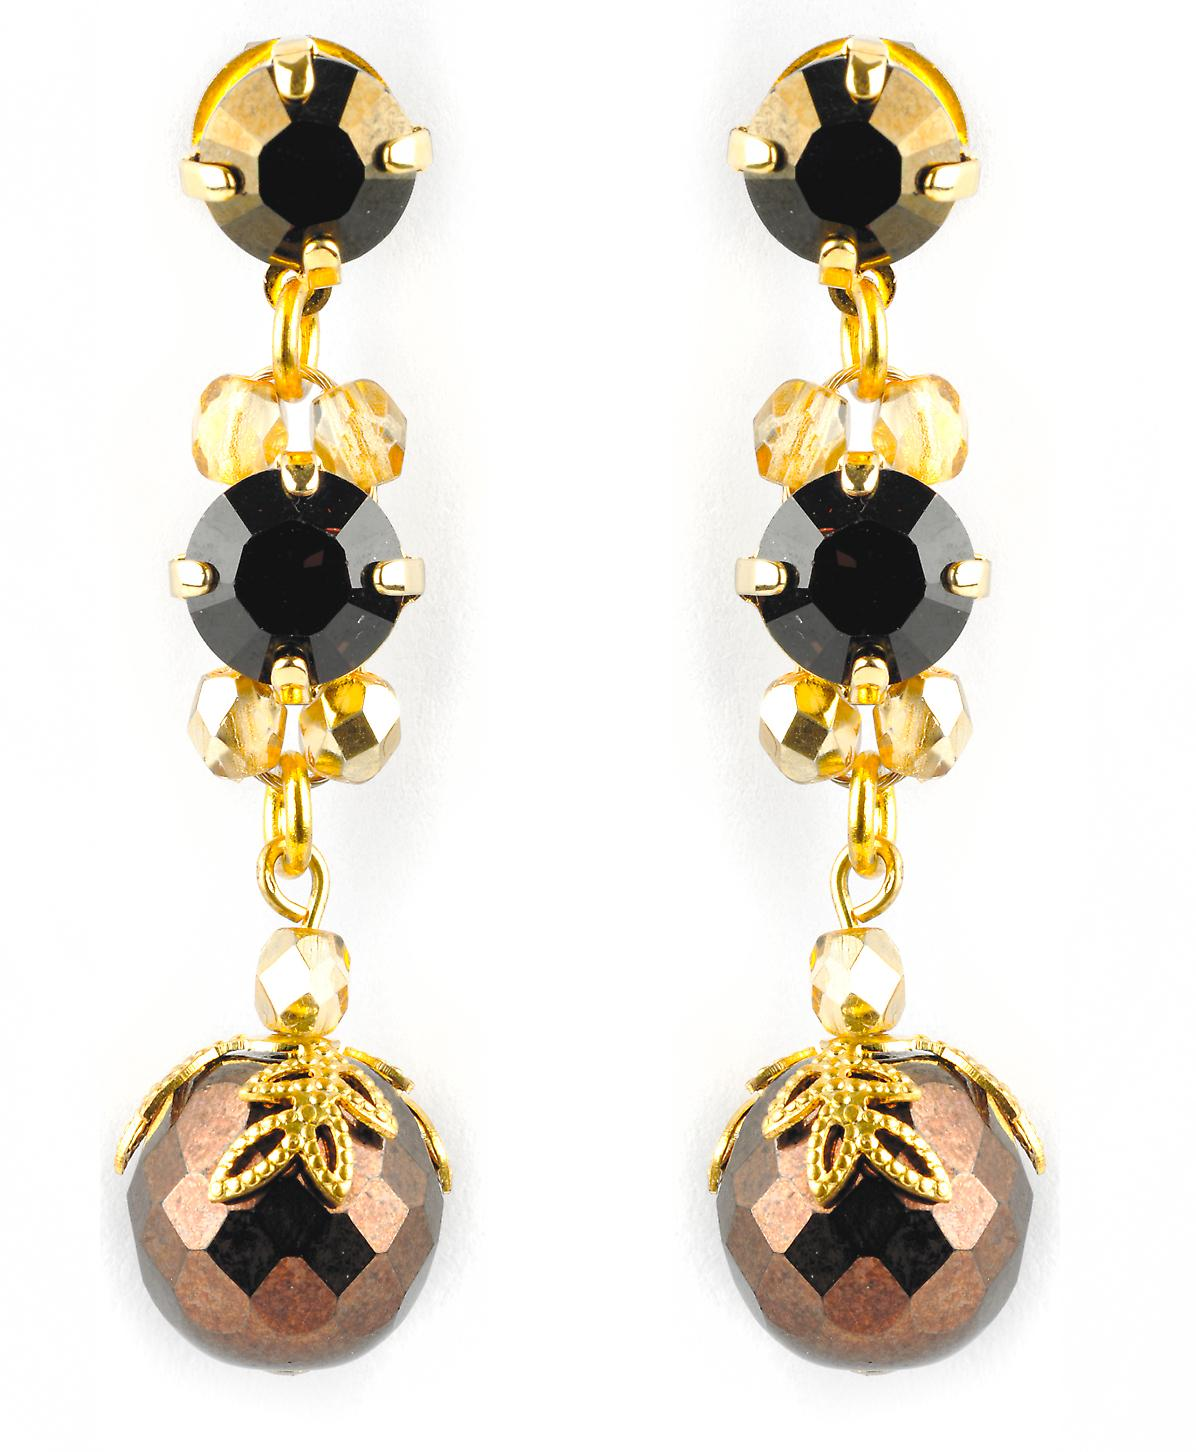 Waooh - jewelry - WJ0692 - earrings with Swarovski - Silver Black Yellow - mount colour gold rhinestones